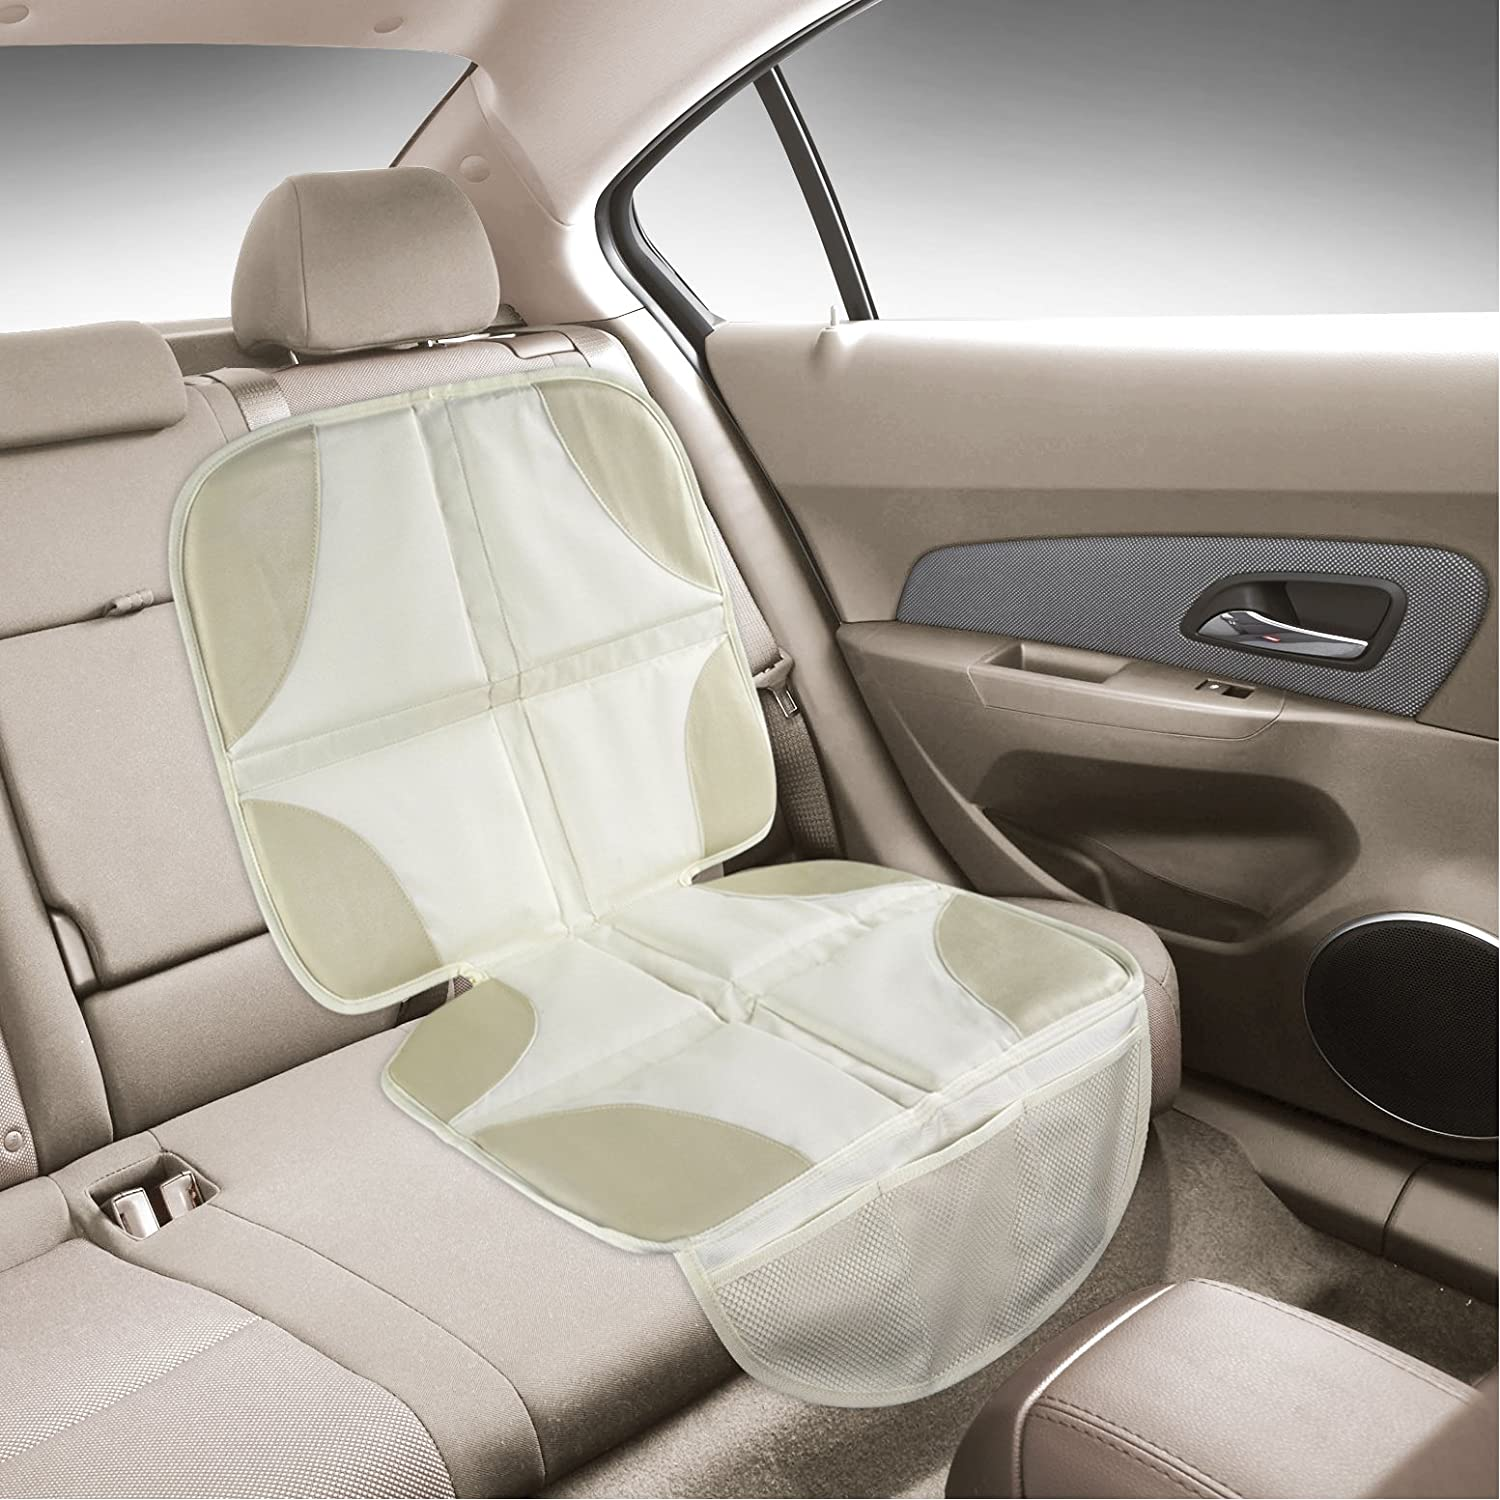 Amazon Luxury Seat Protector Mat To Use Under Your Childs Car Light Color Blend With Tan Beige And Neutral Leather In Prestige Family